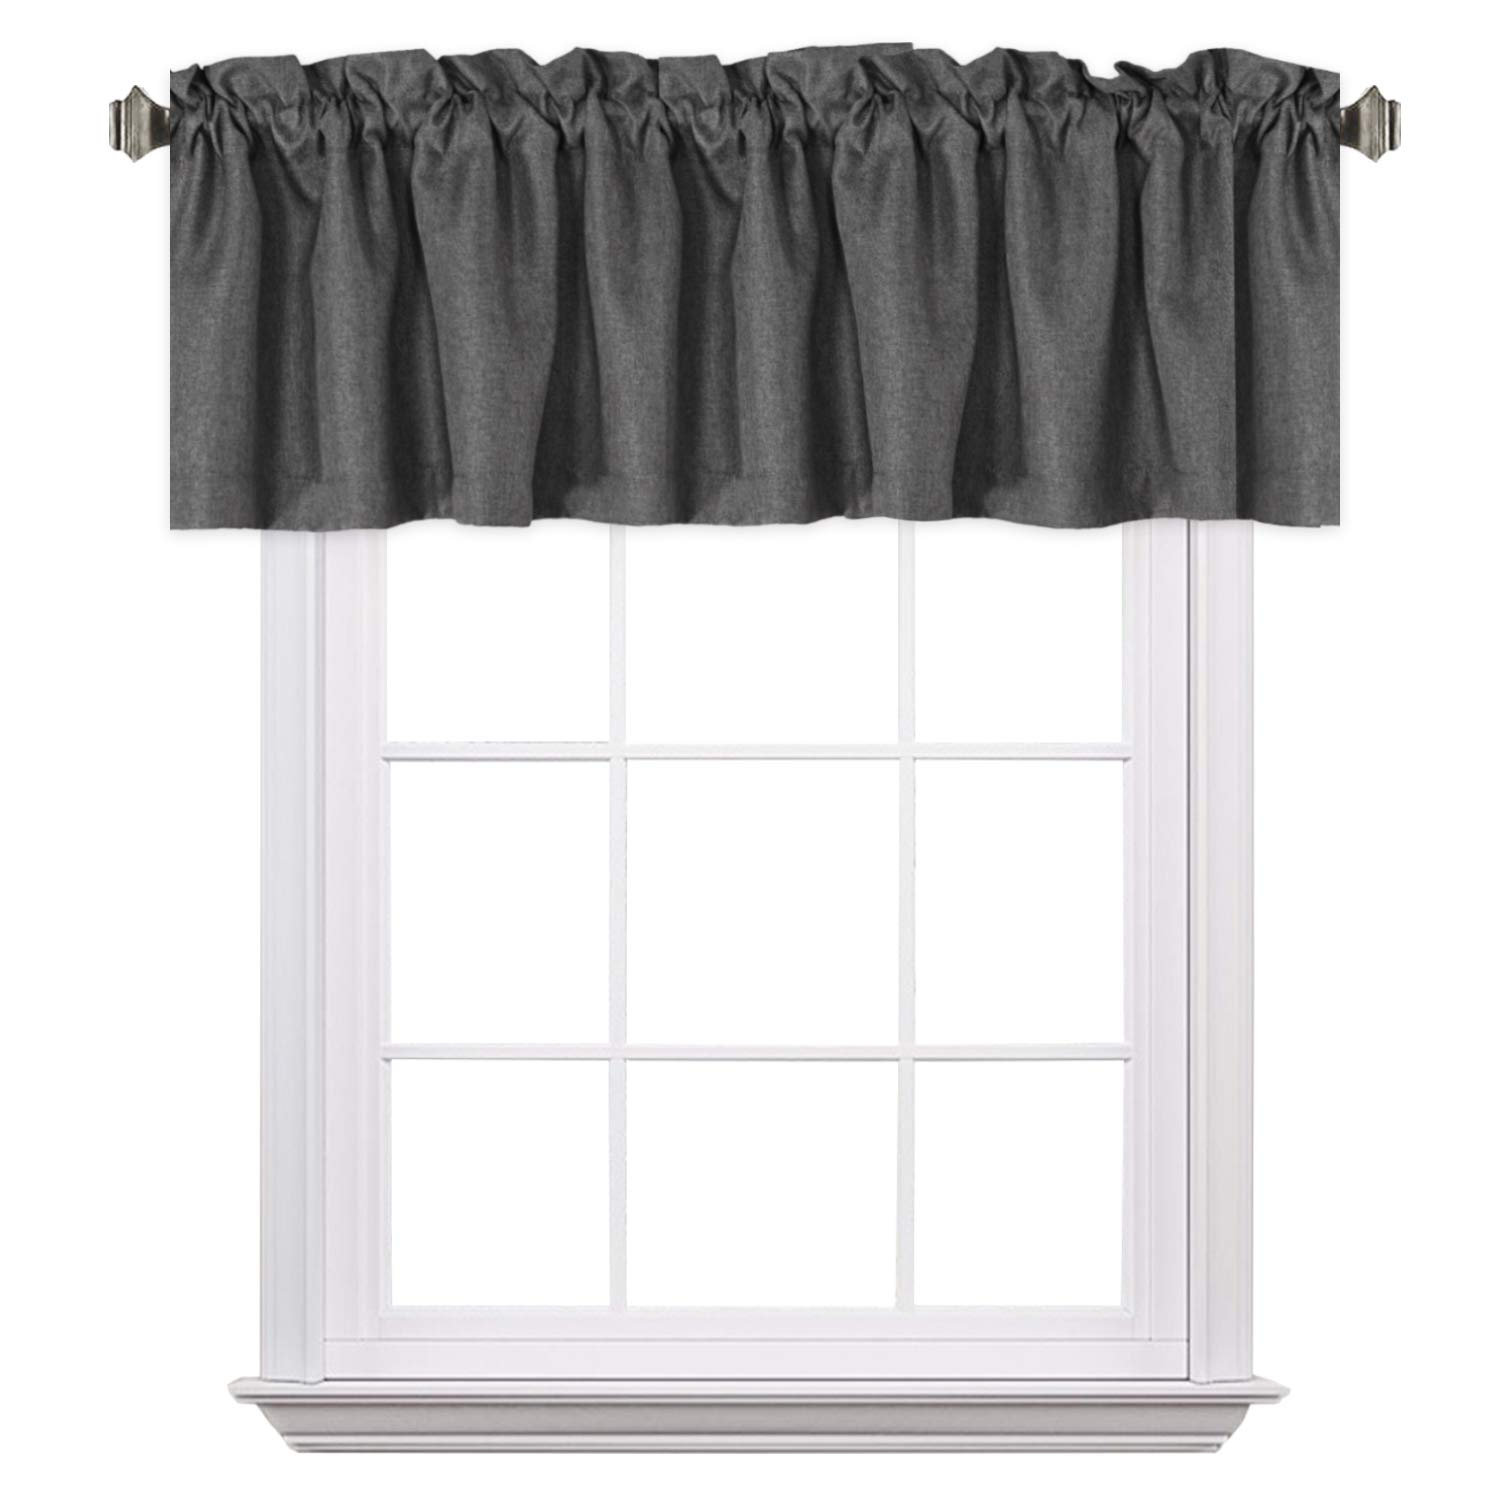 H.VERSAILTEX Elegant Rich Linen Window Curtain Valance,52 by 18 -Inch, Rod Pocket, Charcoal Gray,1 Panel